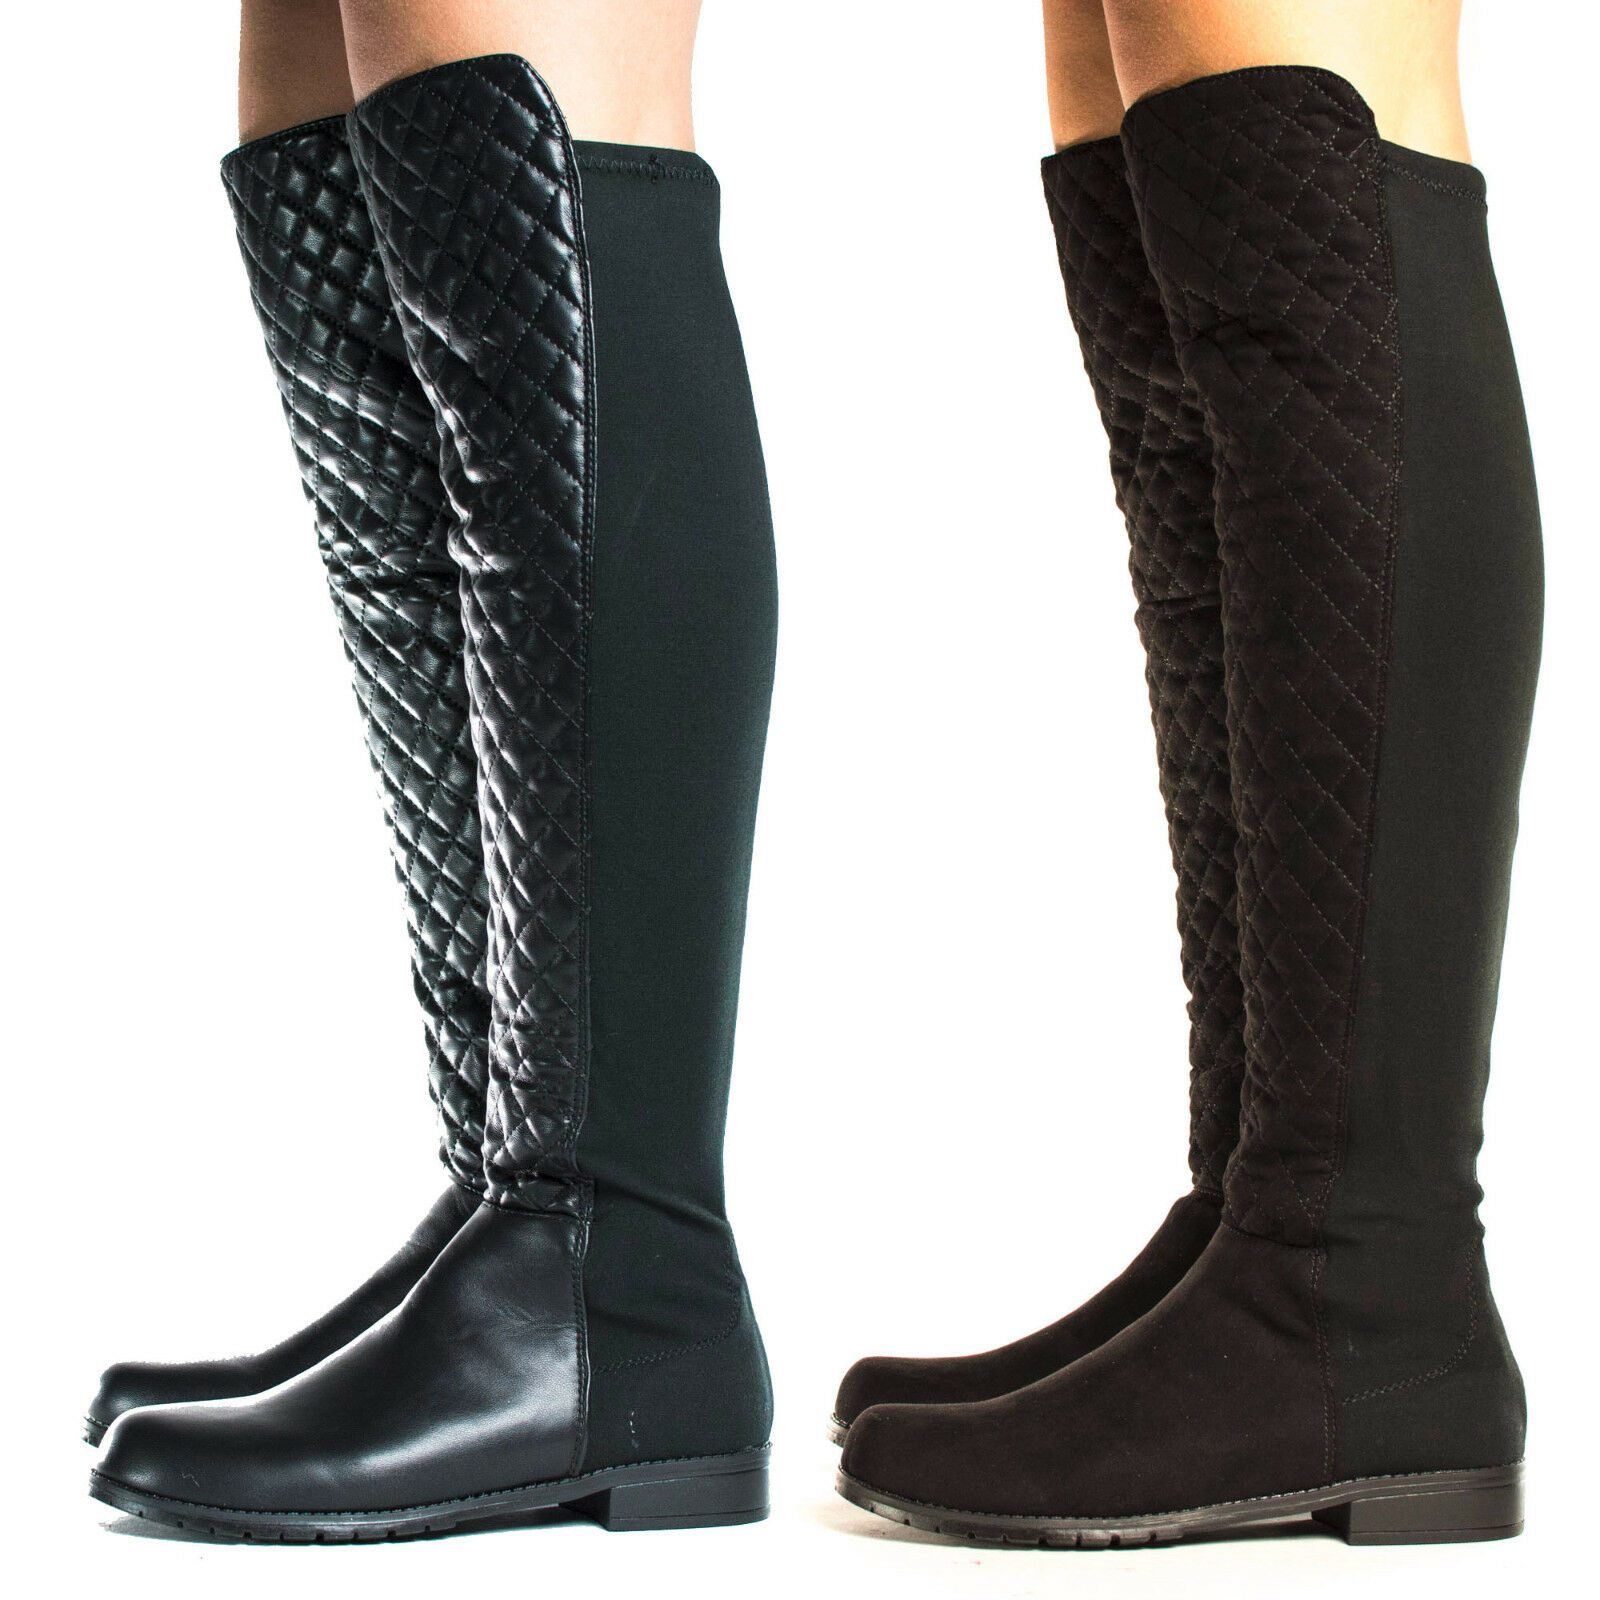 Iconic04 Over The Knee Round Toe Quilted Shaft Lug Sole Riding Boots